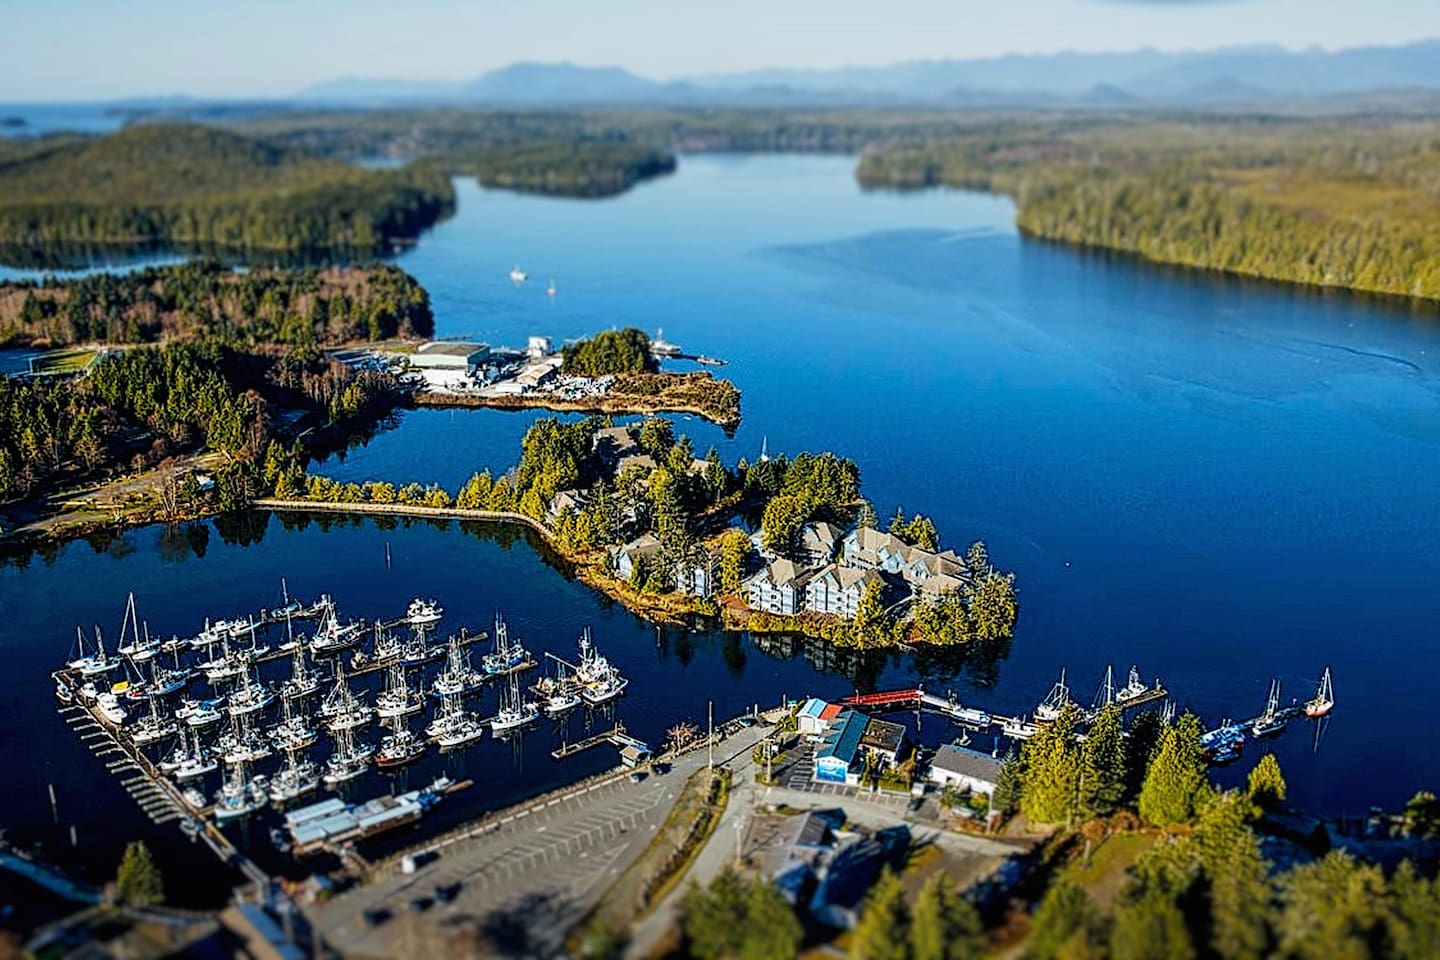 Come escape to the only property with access to both the serene Ucluelet Inlet & bordering Marina from your suite!